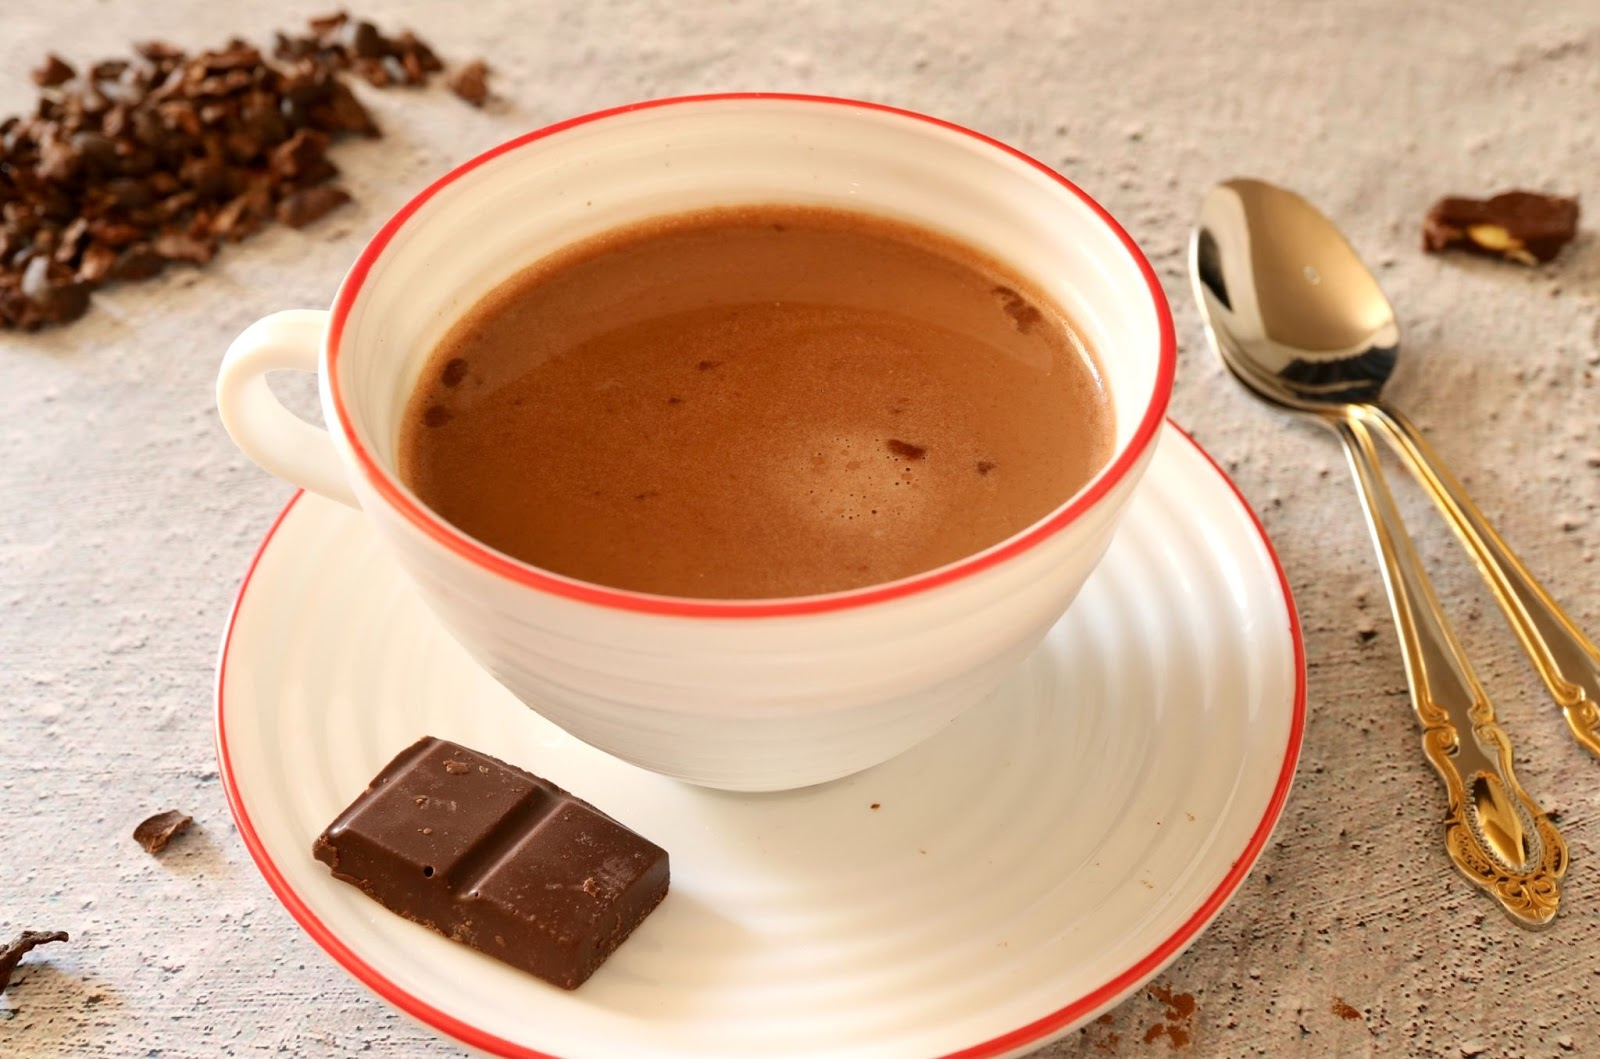 keto hot chocolate featured image